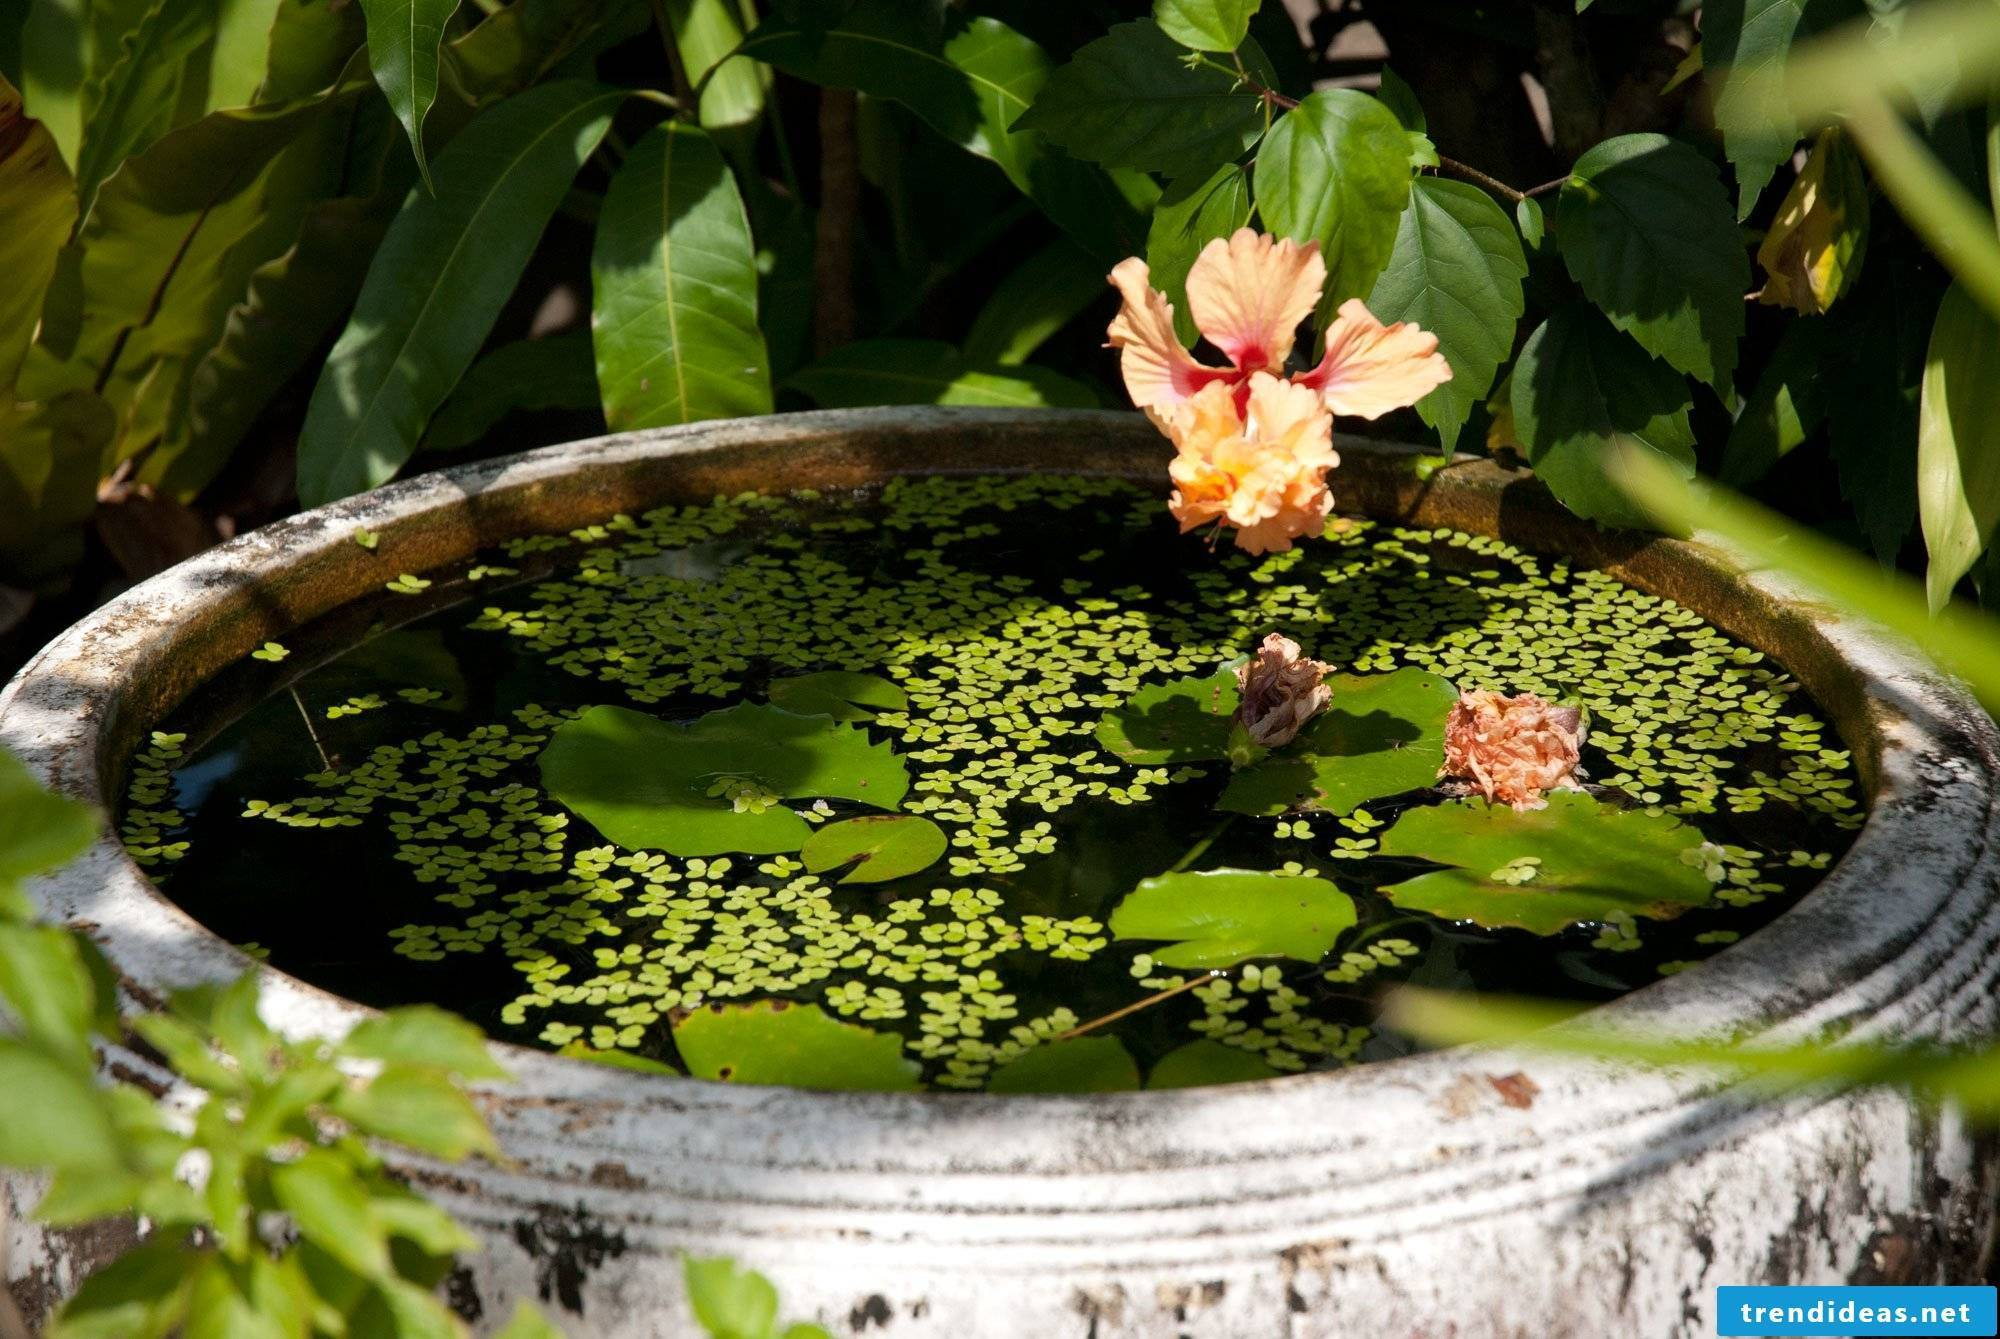 DIY mini pond in the pot and many more great garden ideas for little money can be found in our article